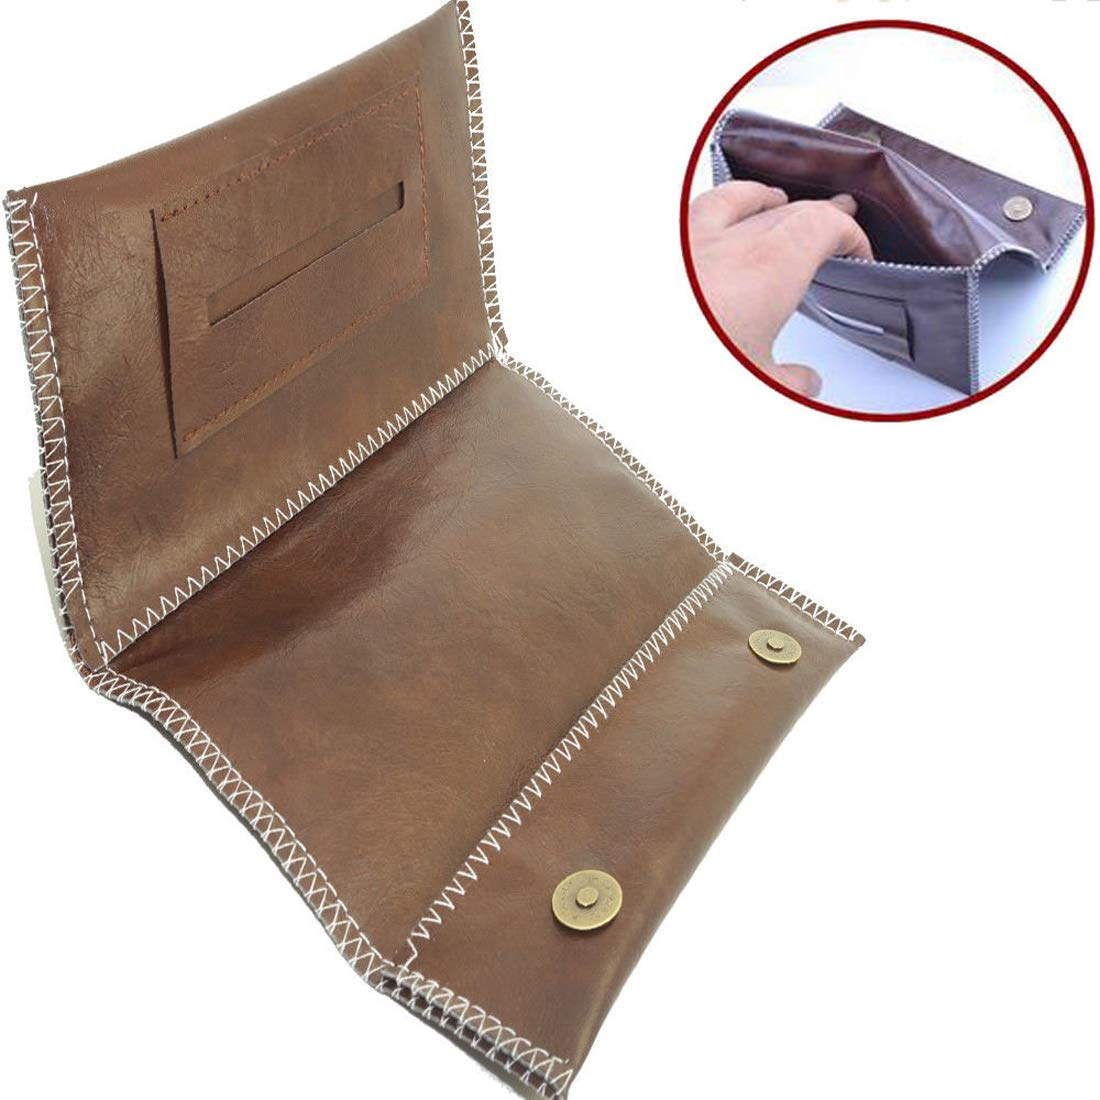 Kavatza Leather Tobacco Pouch Smoking Paper Slot Cig Case Rolling Tips Purse